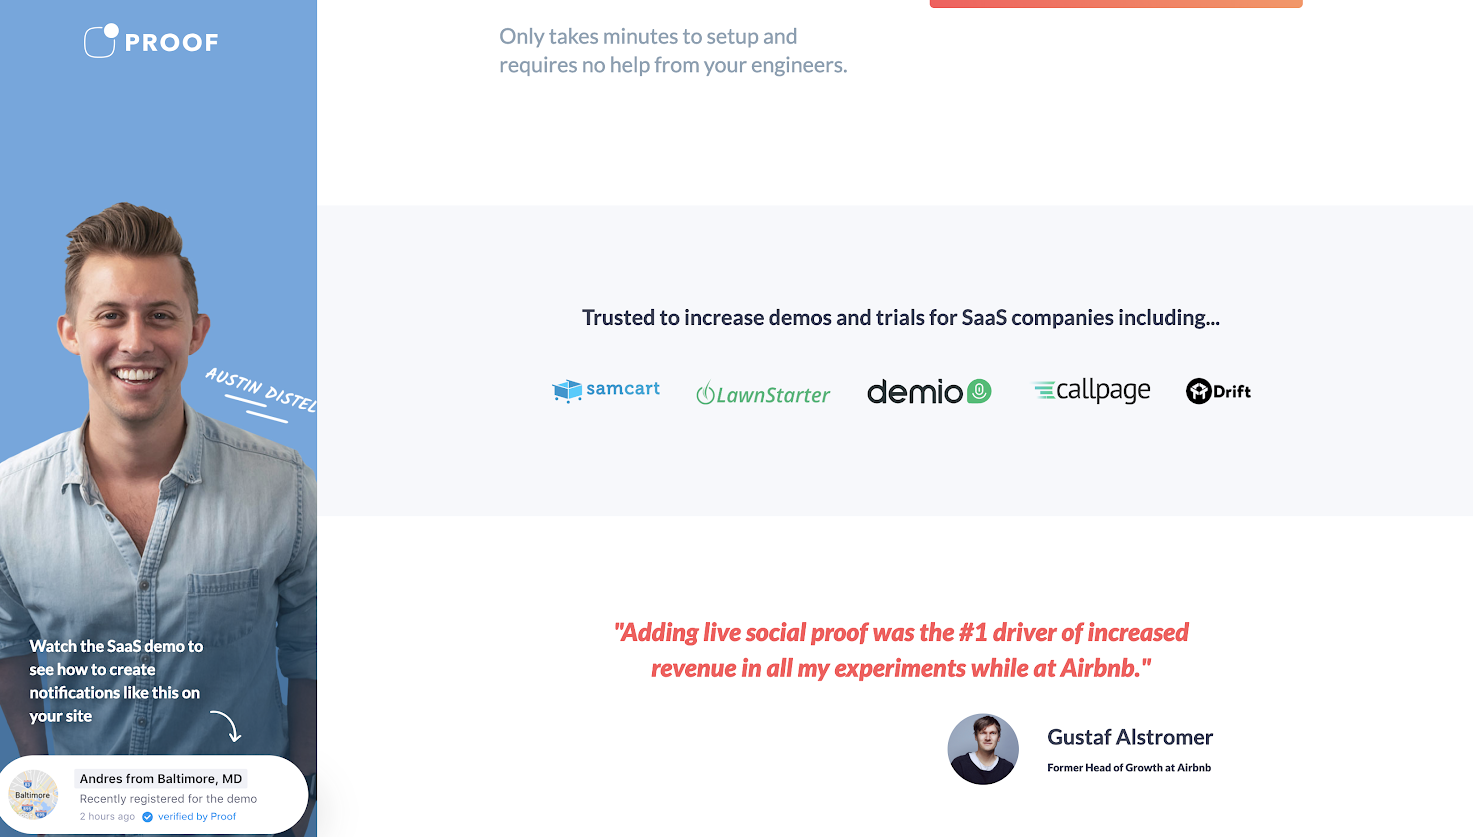 this is a screenshot image of proof's social proof page for SaaS companies that shows SaaS company logos and testimonials